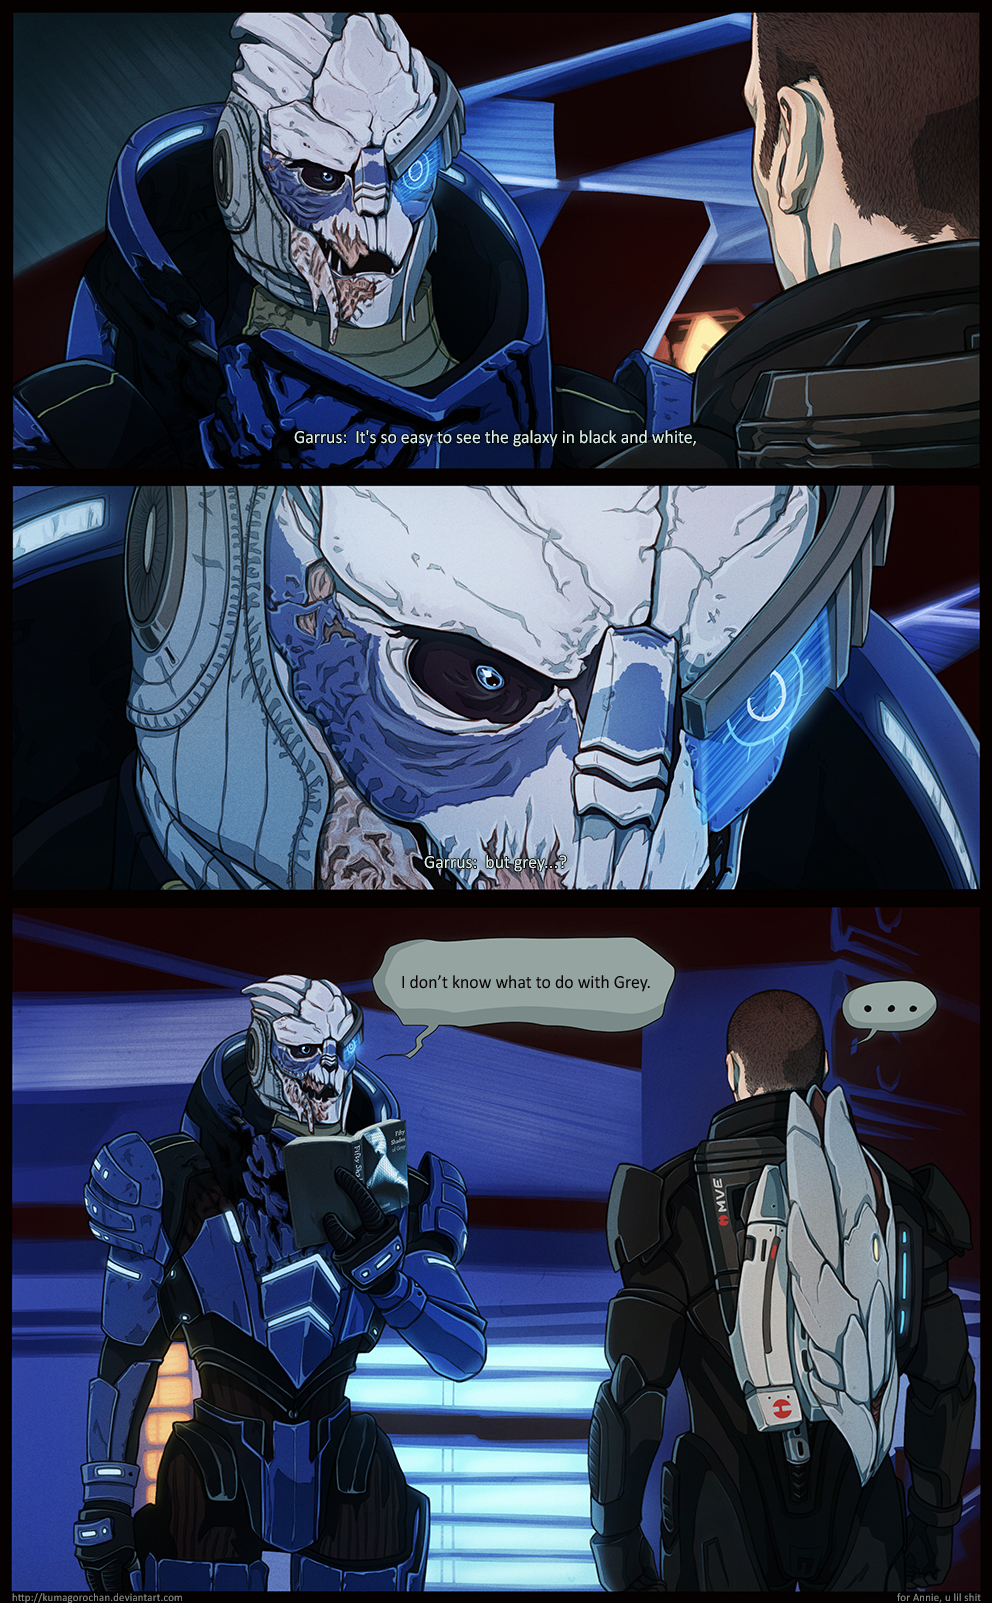 Mass Effect - I don't know what to do with Grey by Kumagorochan